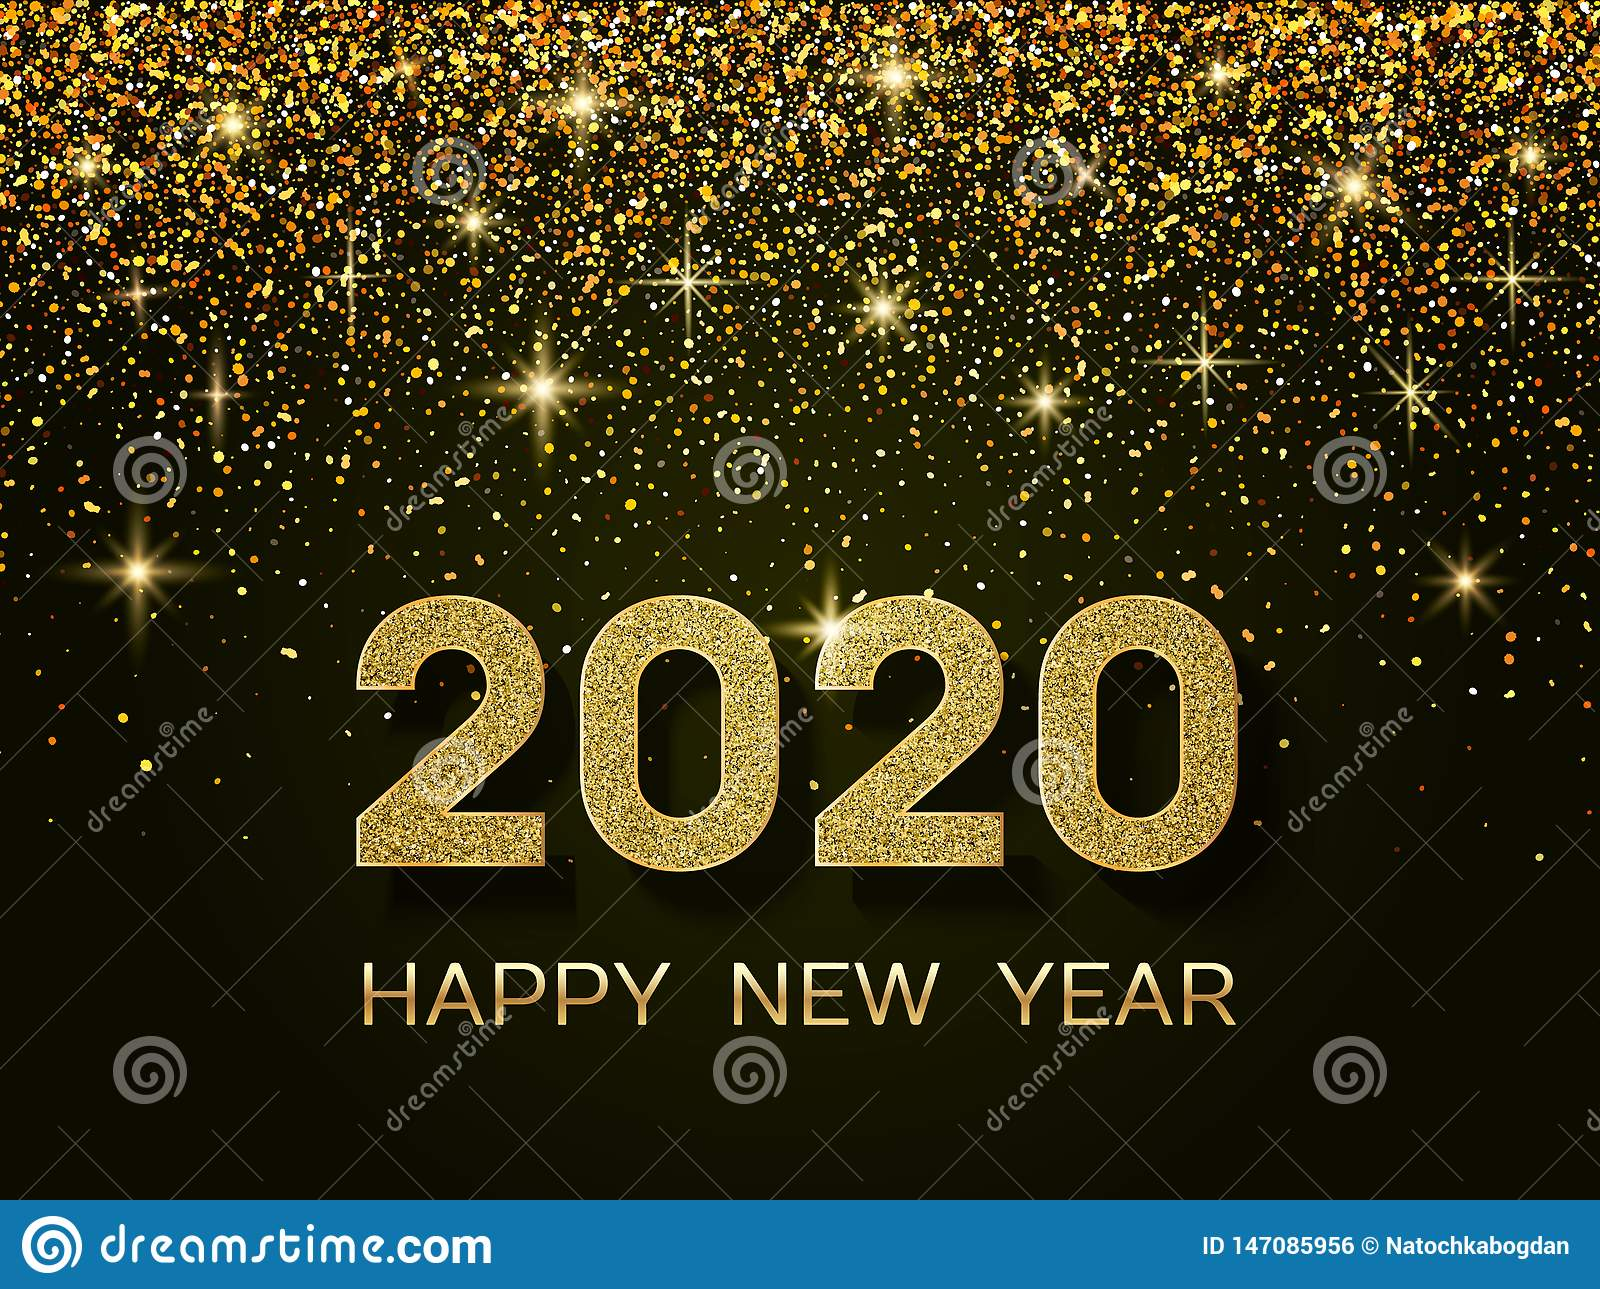 Happy New Year 2020 Glitter 2020 Happy New Year. New Year 2020 Greeting Card. Background With